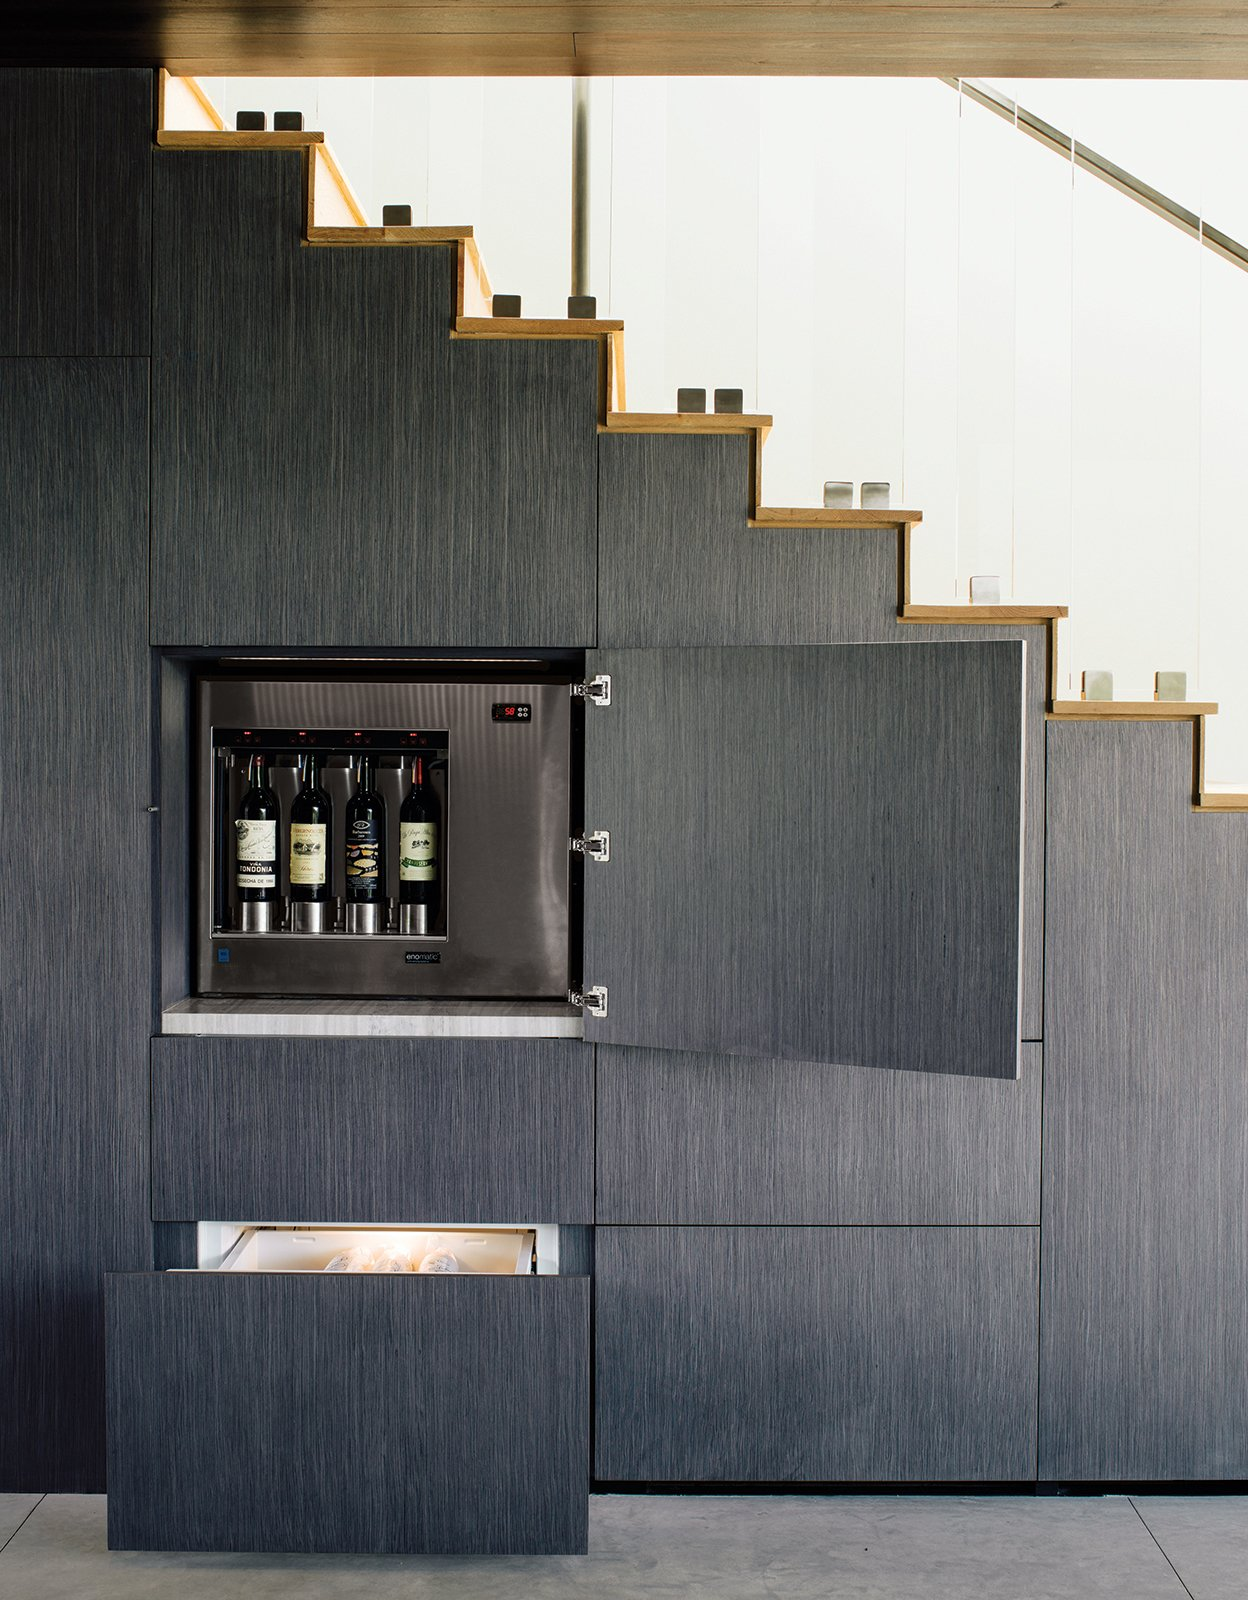 Staircase and Wood The wall beneath the stairs holds hidden storage, including an Enomatic wine dispenser and Sub-Zero refrigerated drawers.  Best Staircase Photos from Modern Home Designed for Live Music in Beverly Hills